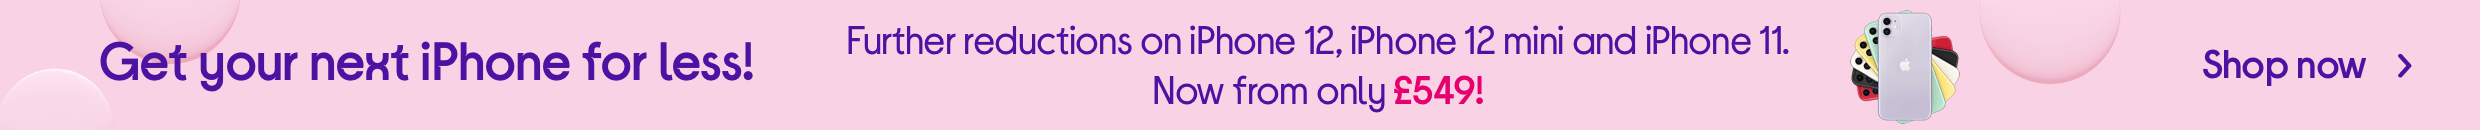 IPHONE REDUCTION